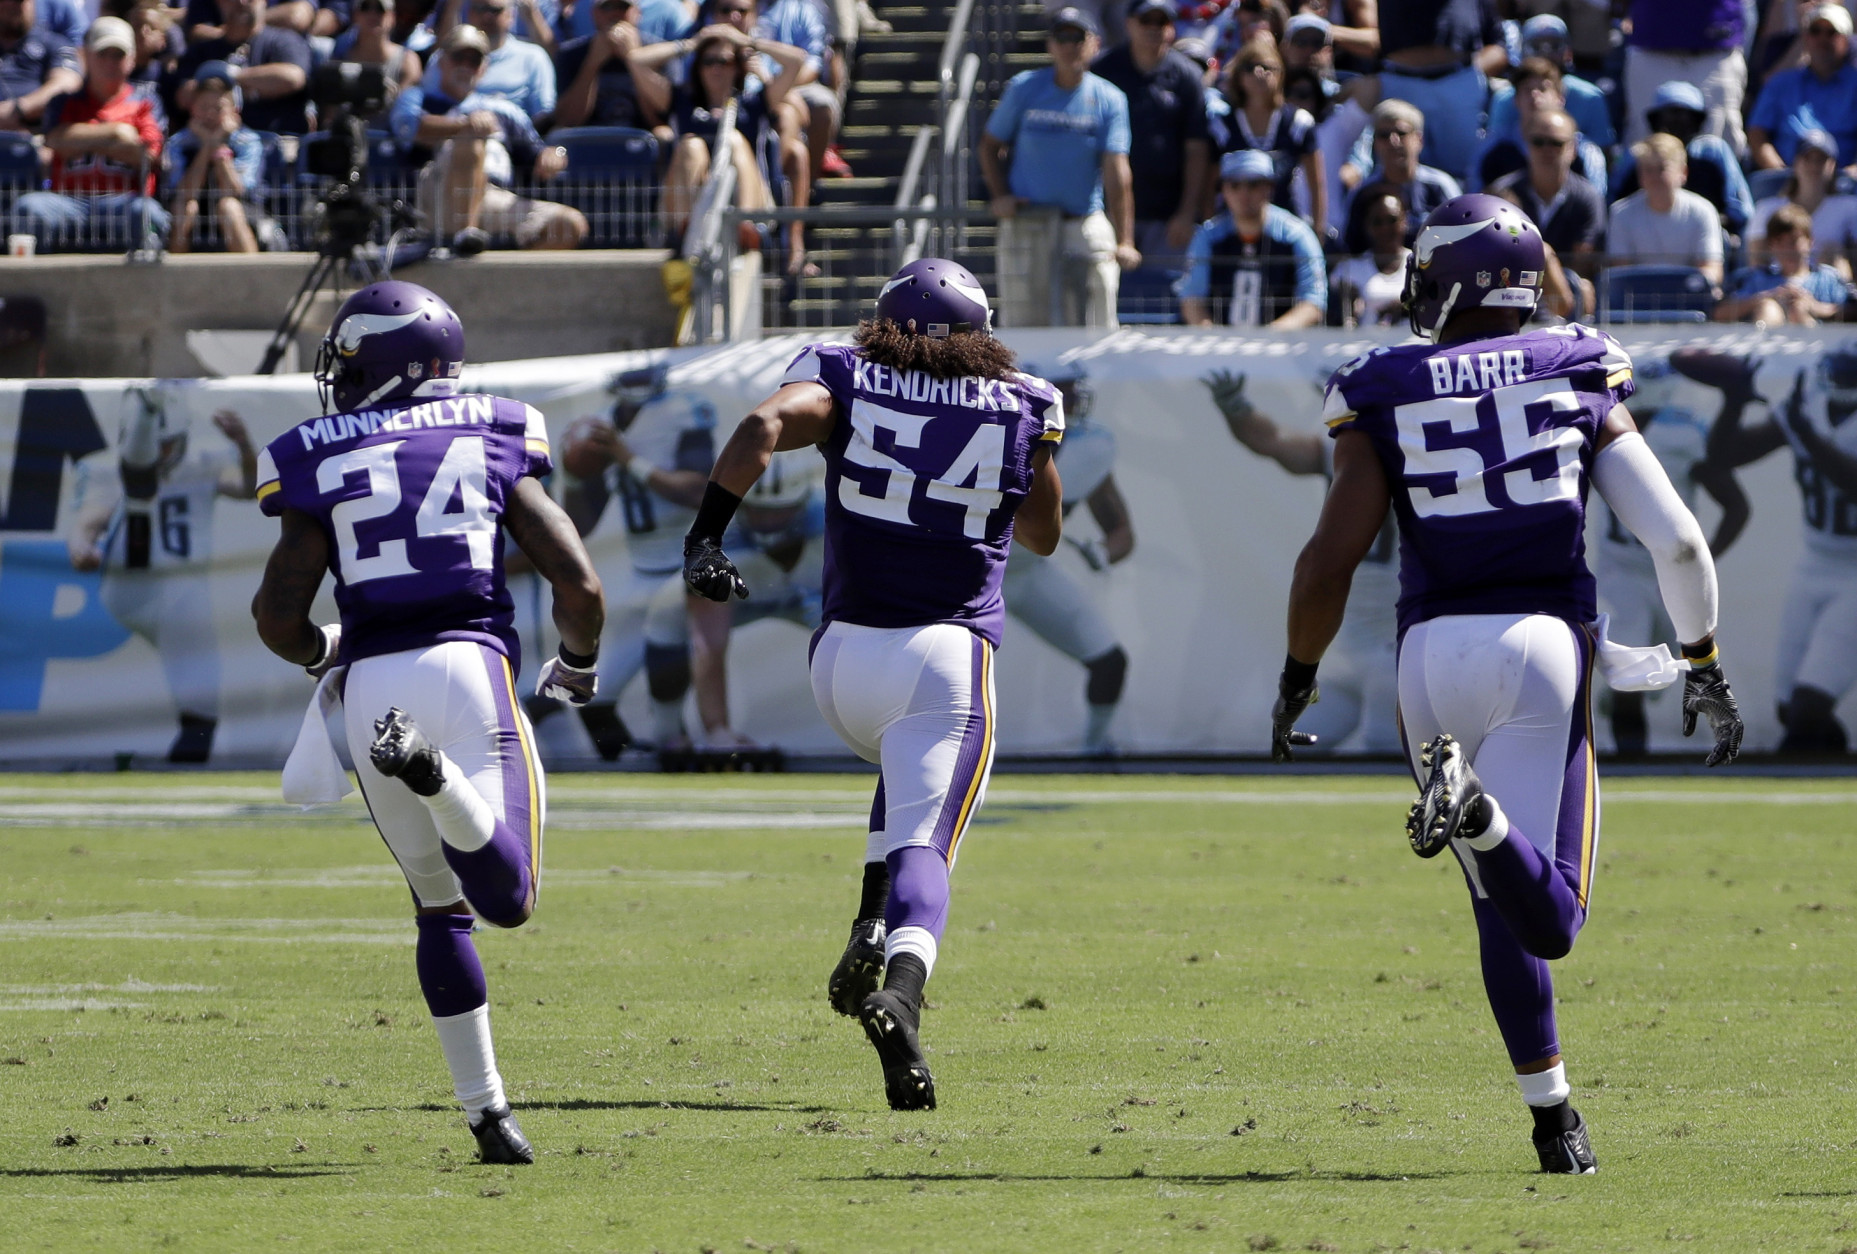 Minnesota Vikings linebacker Eric Kendricks (54) returns an intercepted pass 77 yards for a touchdown against the Tennessee Titans in the second half of an NFL football game Sunday, Sept. 11, 2016, in Nashville, Tenn. With Kendricks are Captain Munnerlyn (24) and Anthony Barr (55). (AP Photo/James Kenney)